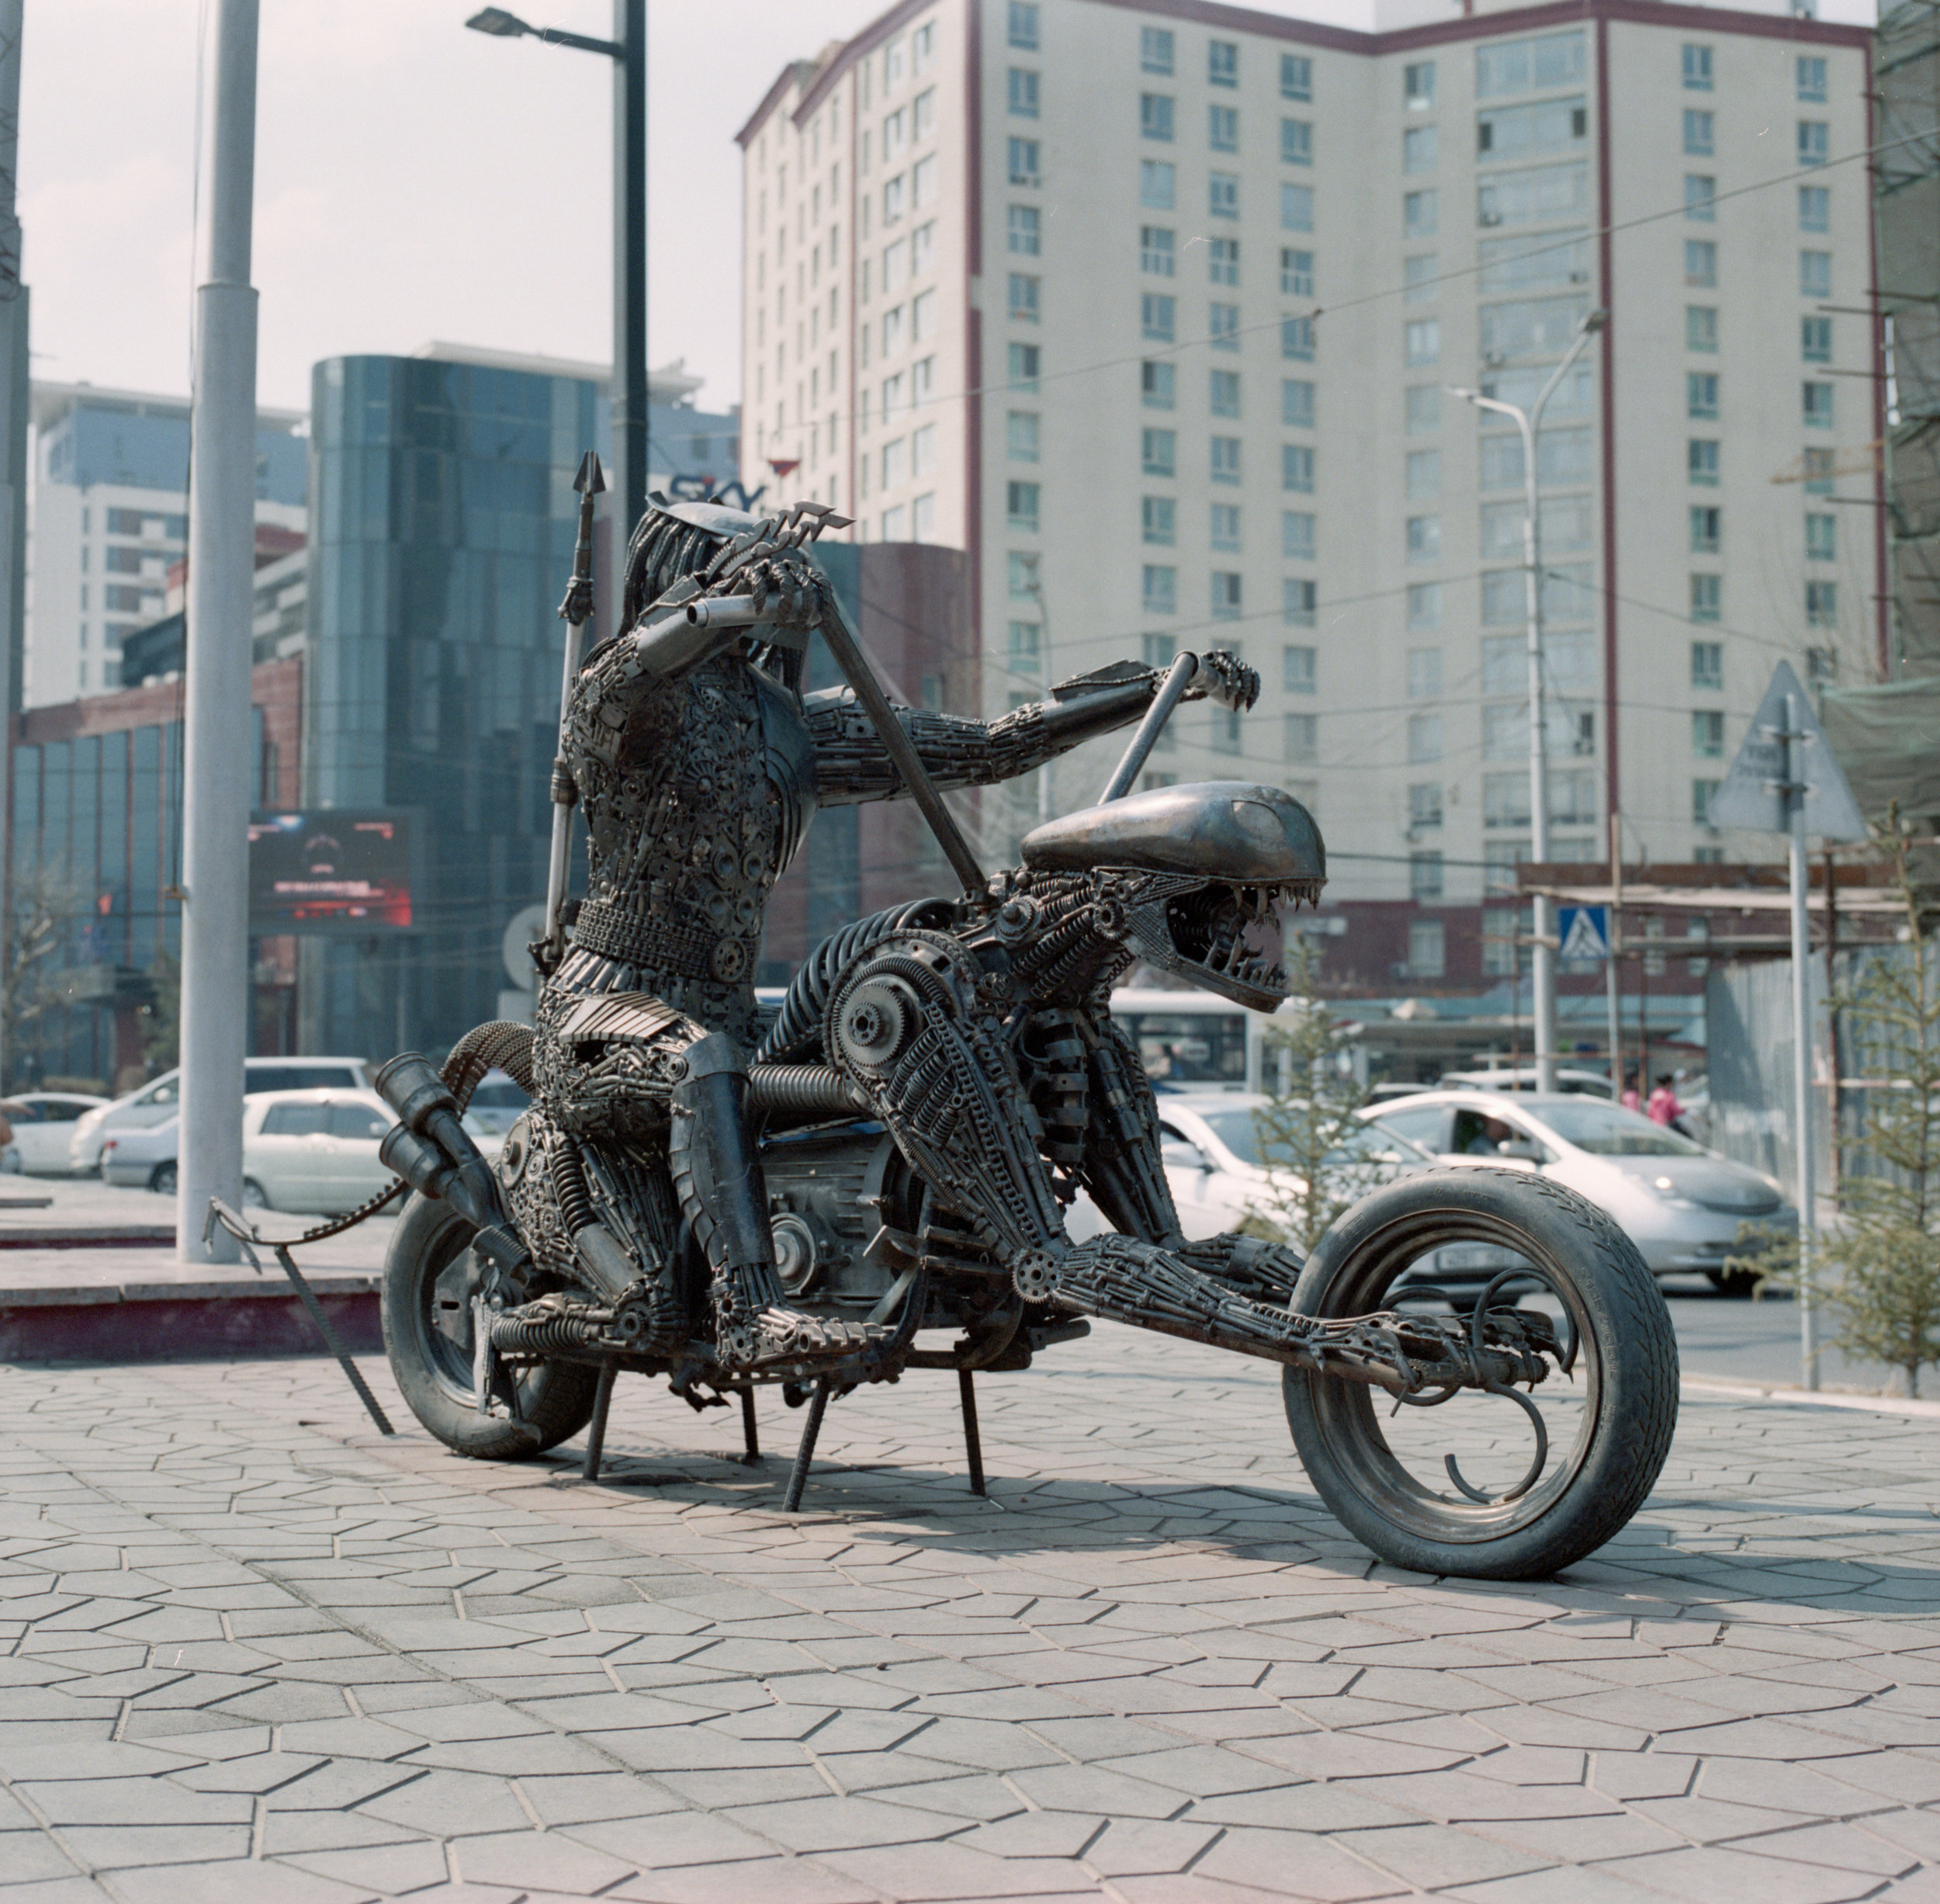 Predator riding Alien, made out of nuts, bolts, and random parts Fuji GF670 | Agfa Vista 400